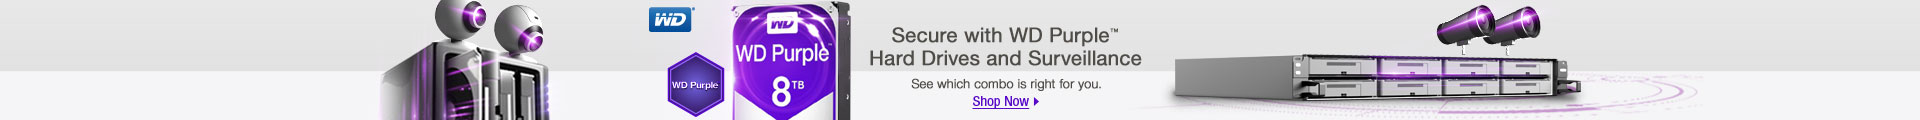 Secure with WD Purple Hard Drives and Surveillance